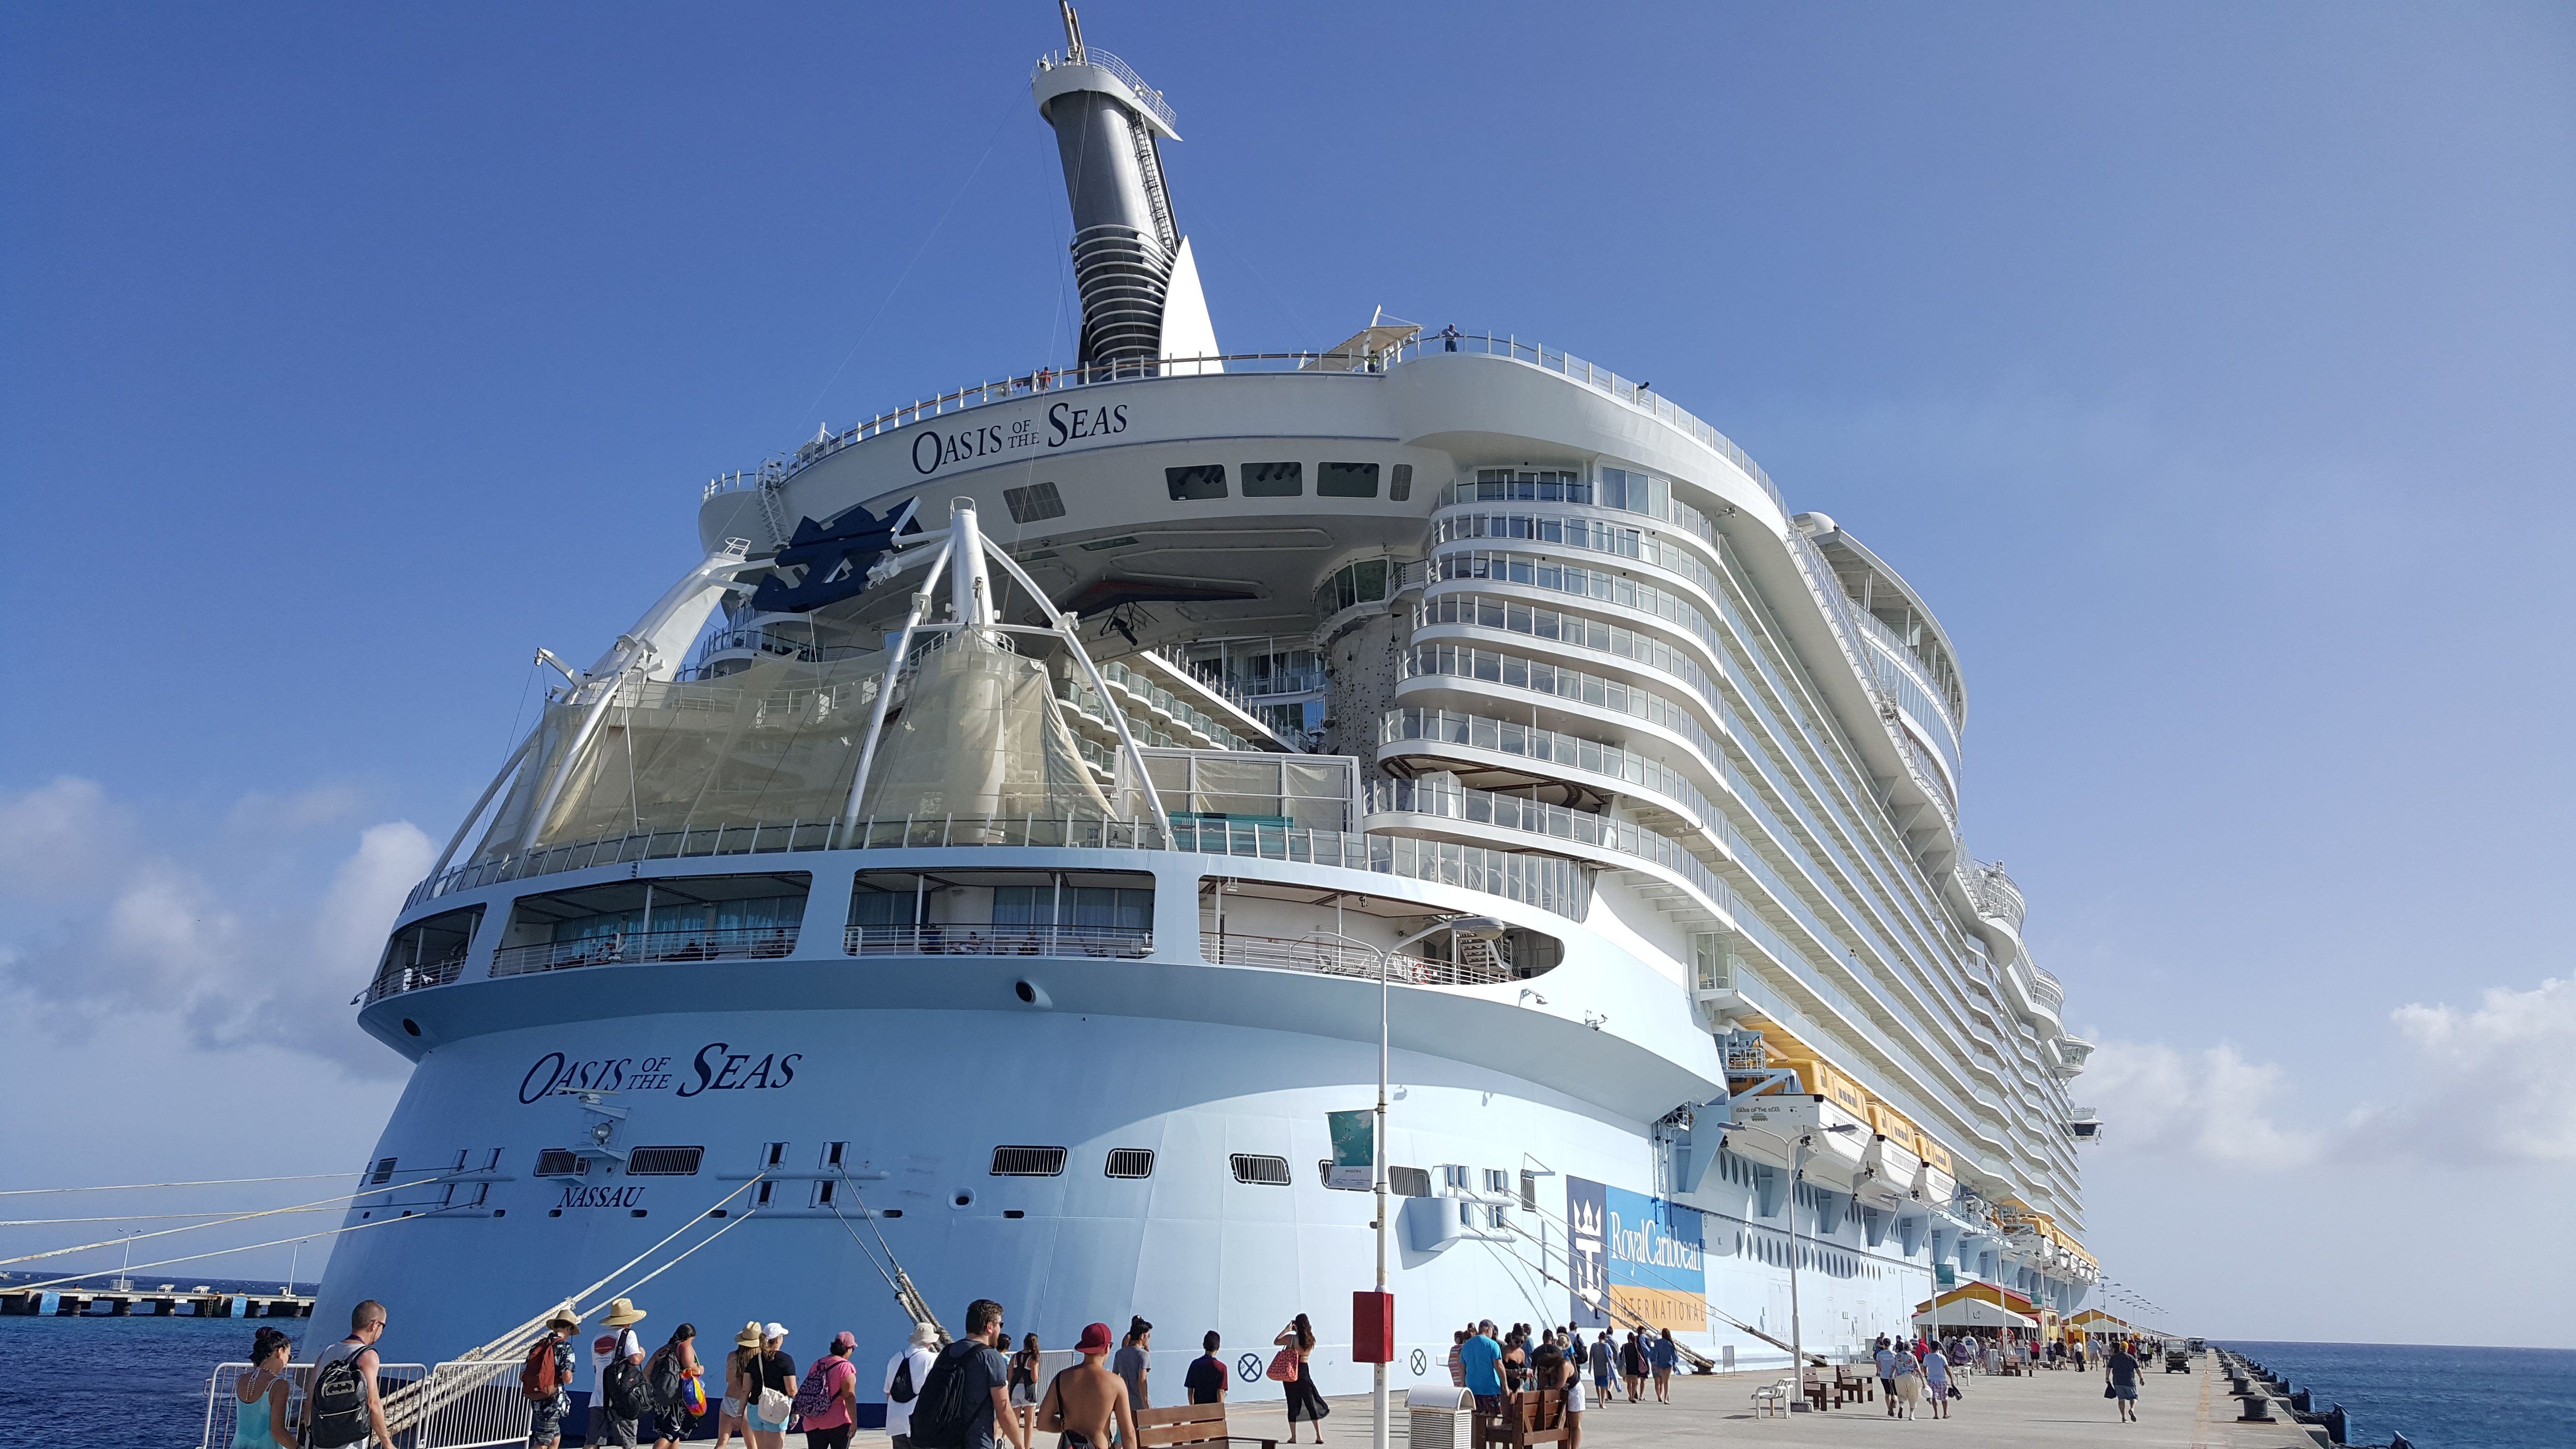 The Royal Caribbeans Oasis Of The Seas The Largest Cruise Ship - Cruise ships charleston sc